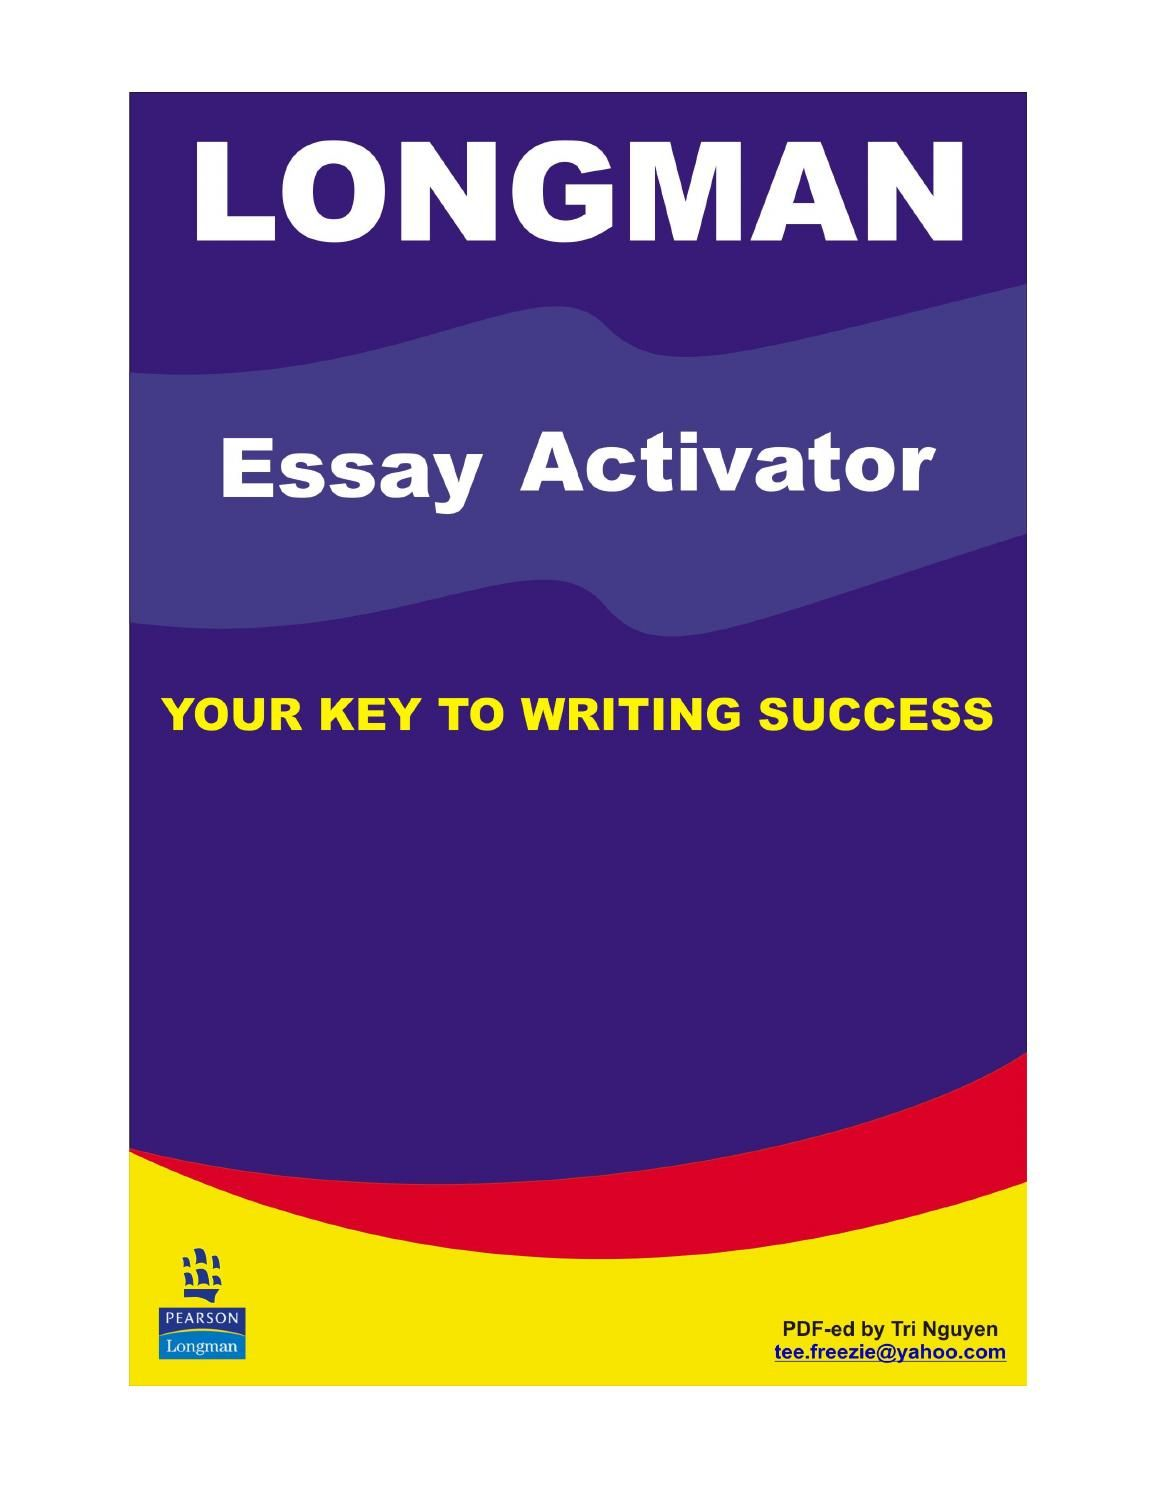 Longman Essay Activator Language Learning English And English  Ccb61fee107214428aef2f1ef0117751 360780620124821097. Essay About Learning English  Language